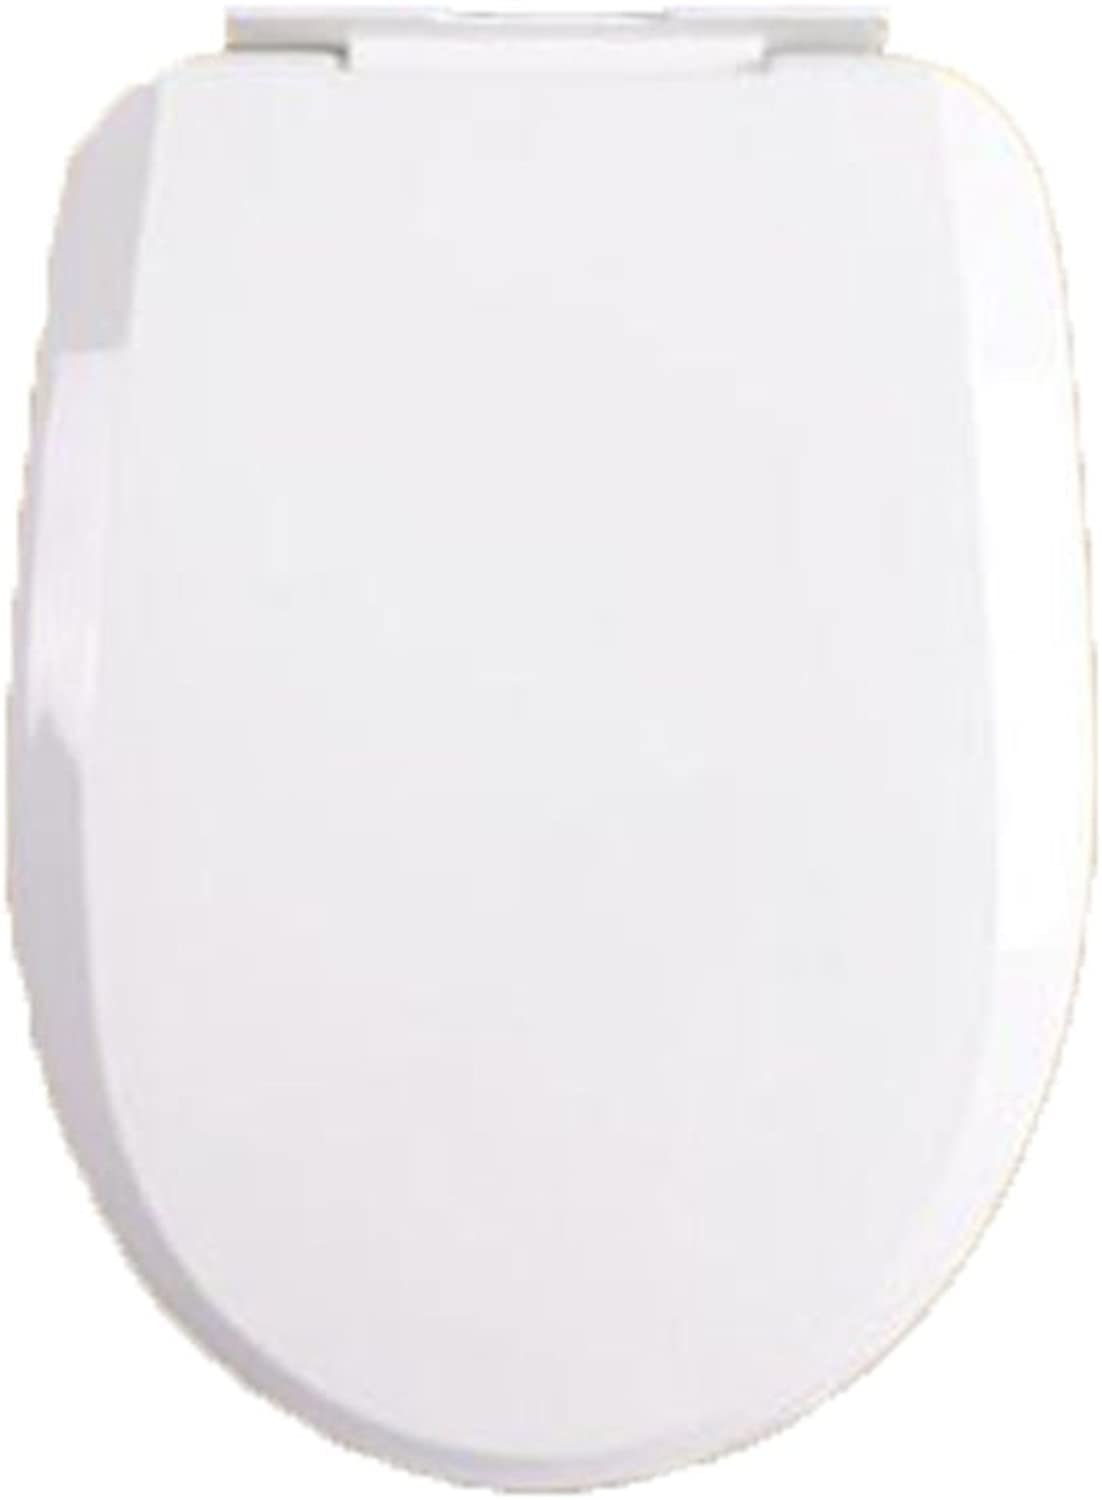 Toilet Seat U Toilet Mute Thickening Toilet Cover Descending, White-40-44  34-35cm